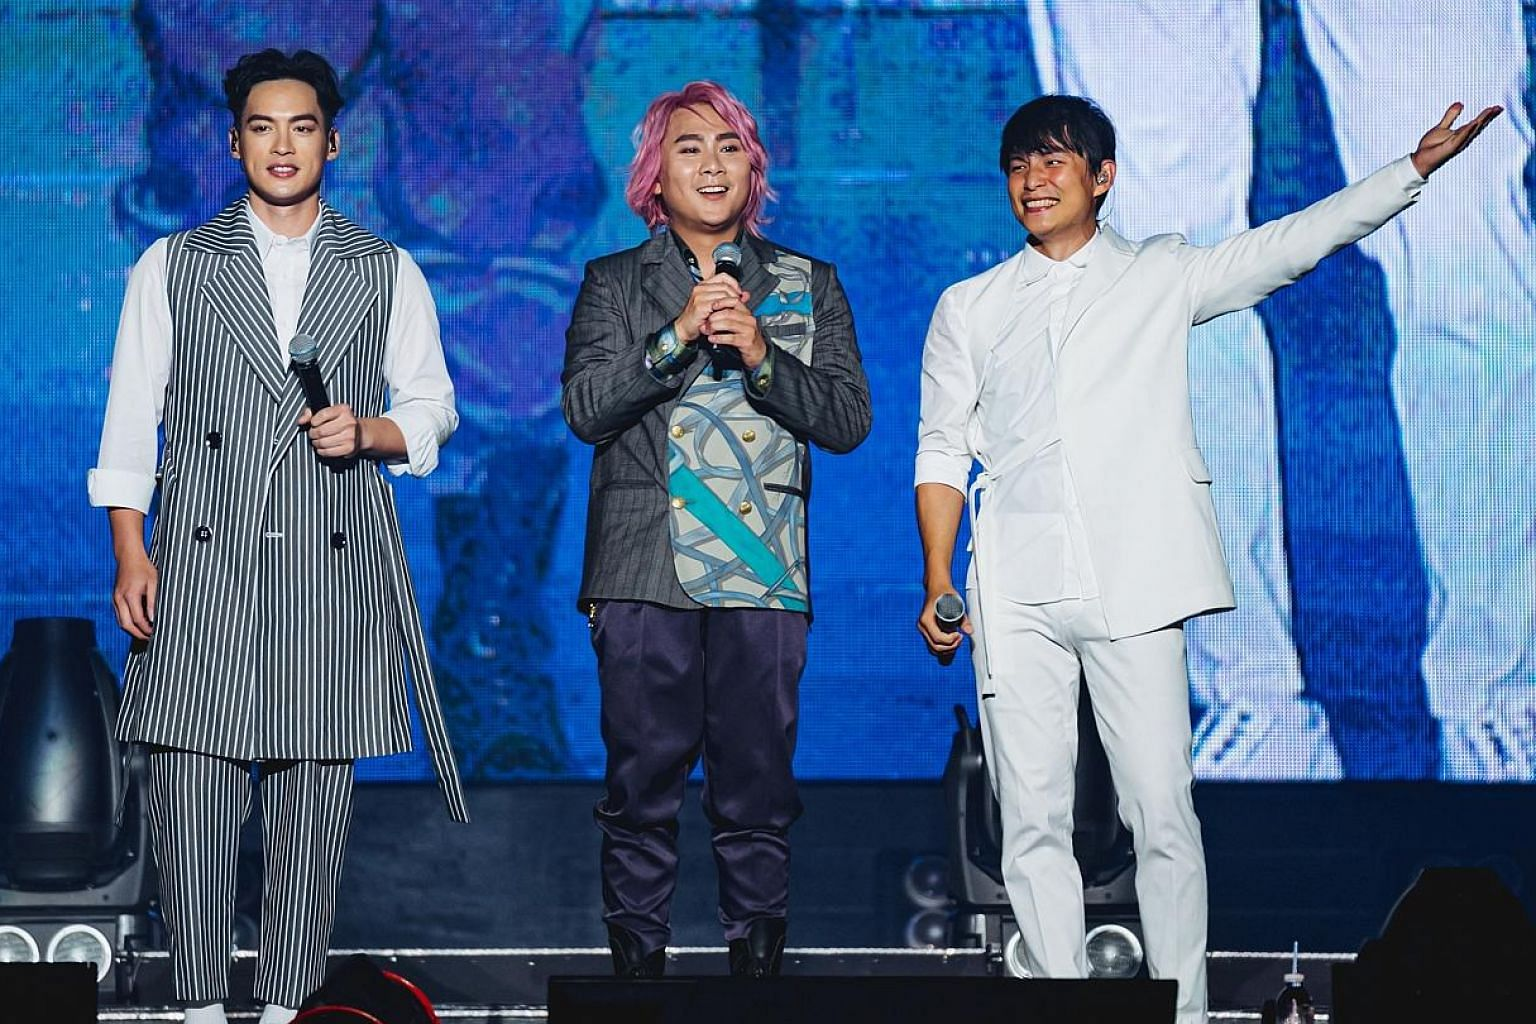 Taiwanese boy band 5566 (from left) Jason Hsu, Zax Wang and Tony Sun performed I'm Sad, an enduring karaoke favourite said to be the group's most famous song, thrice last Saturday.